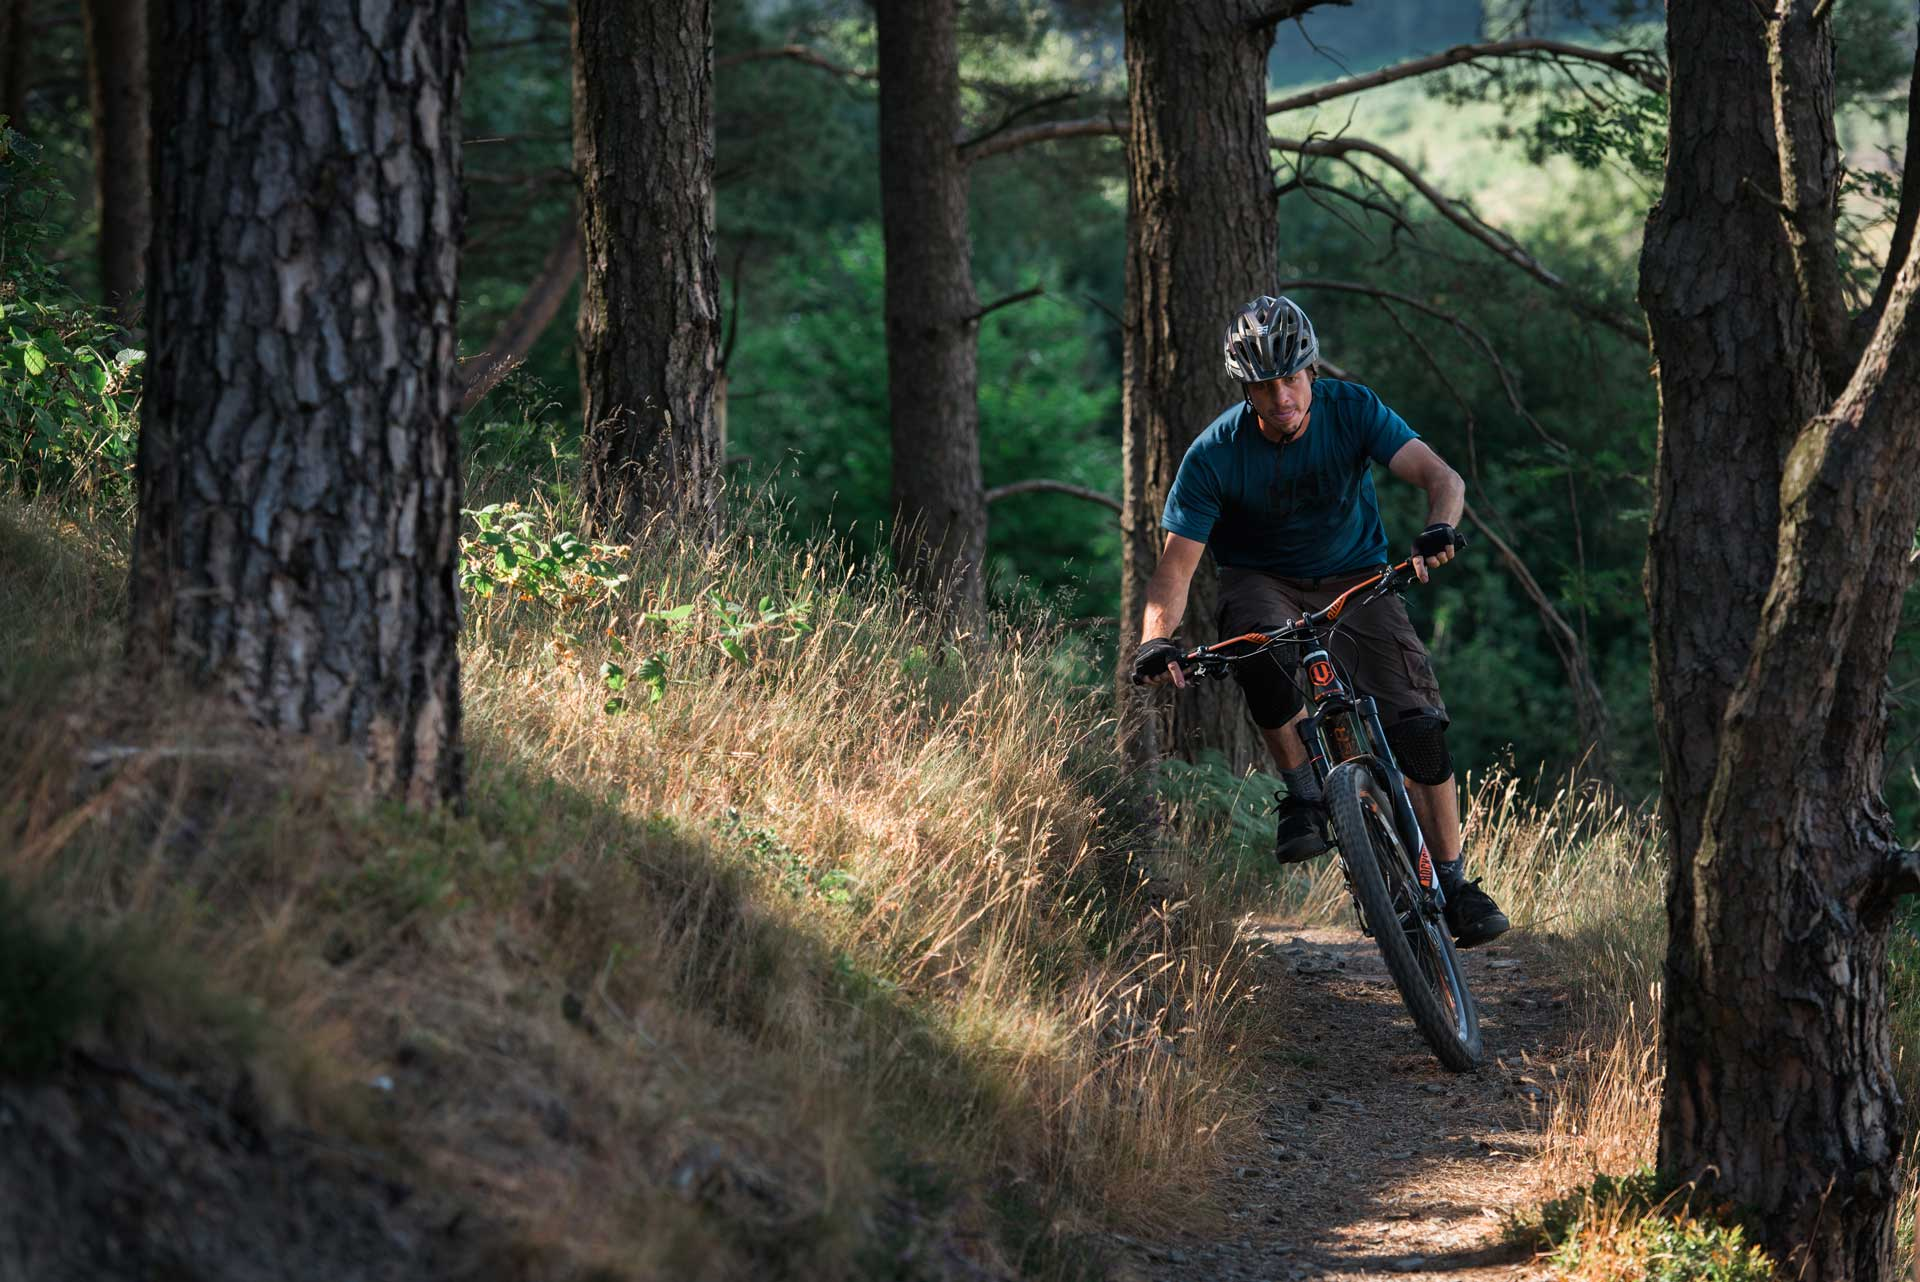 A mountain biker traveling at speed through the woodland